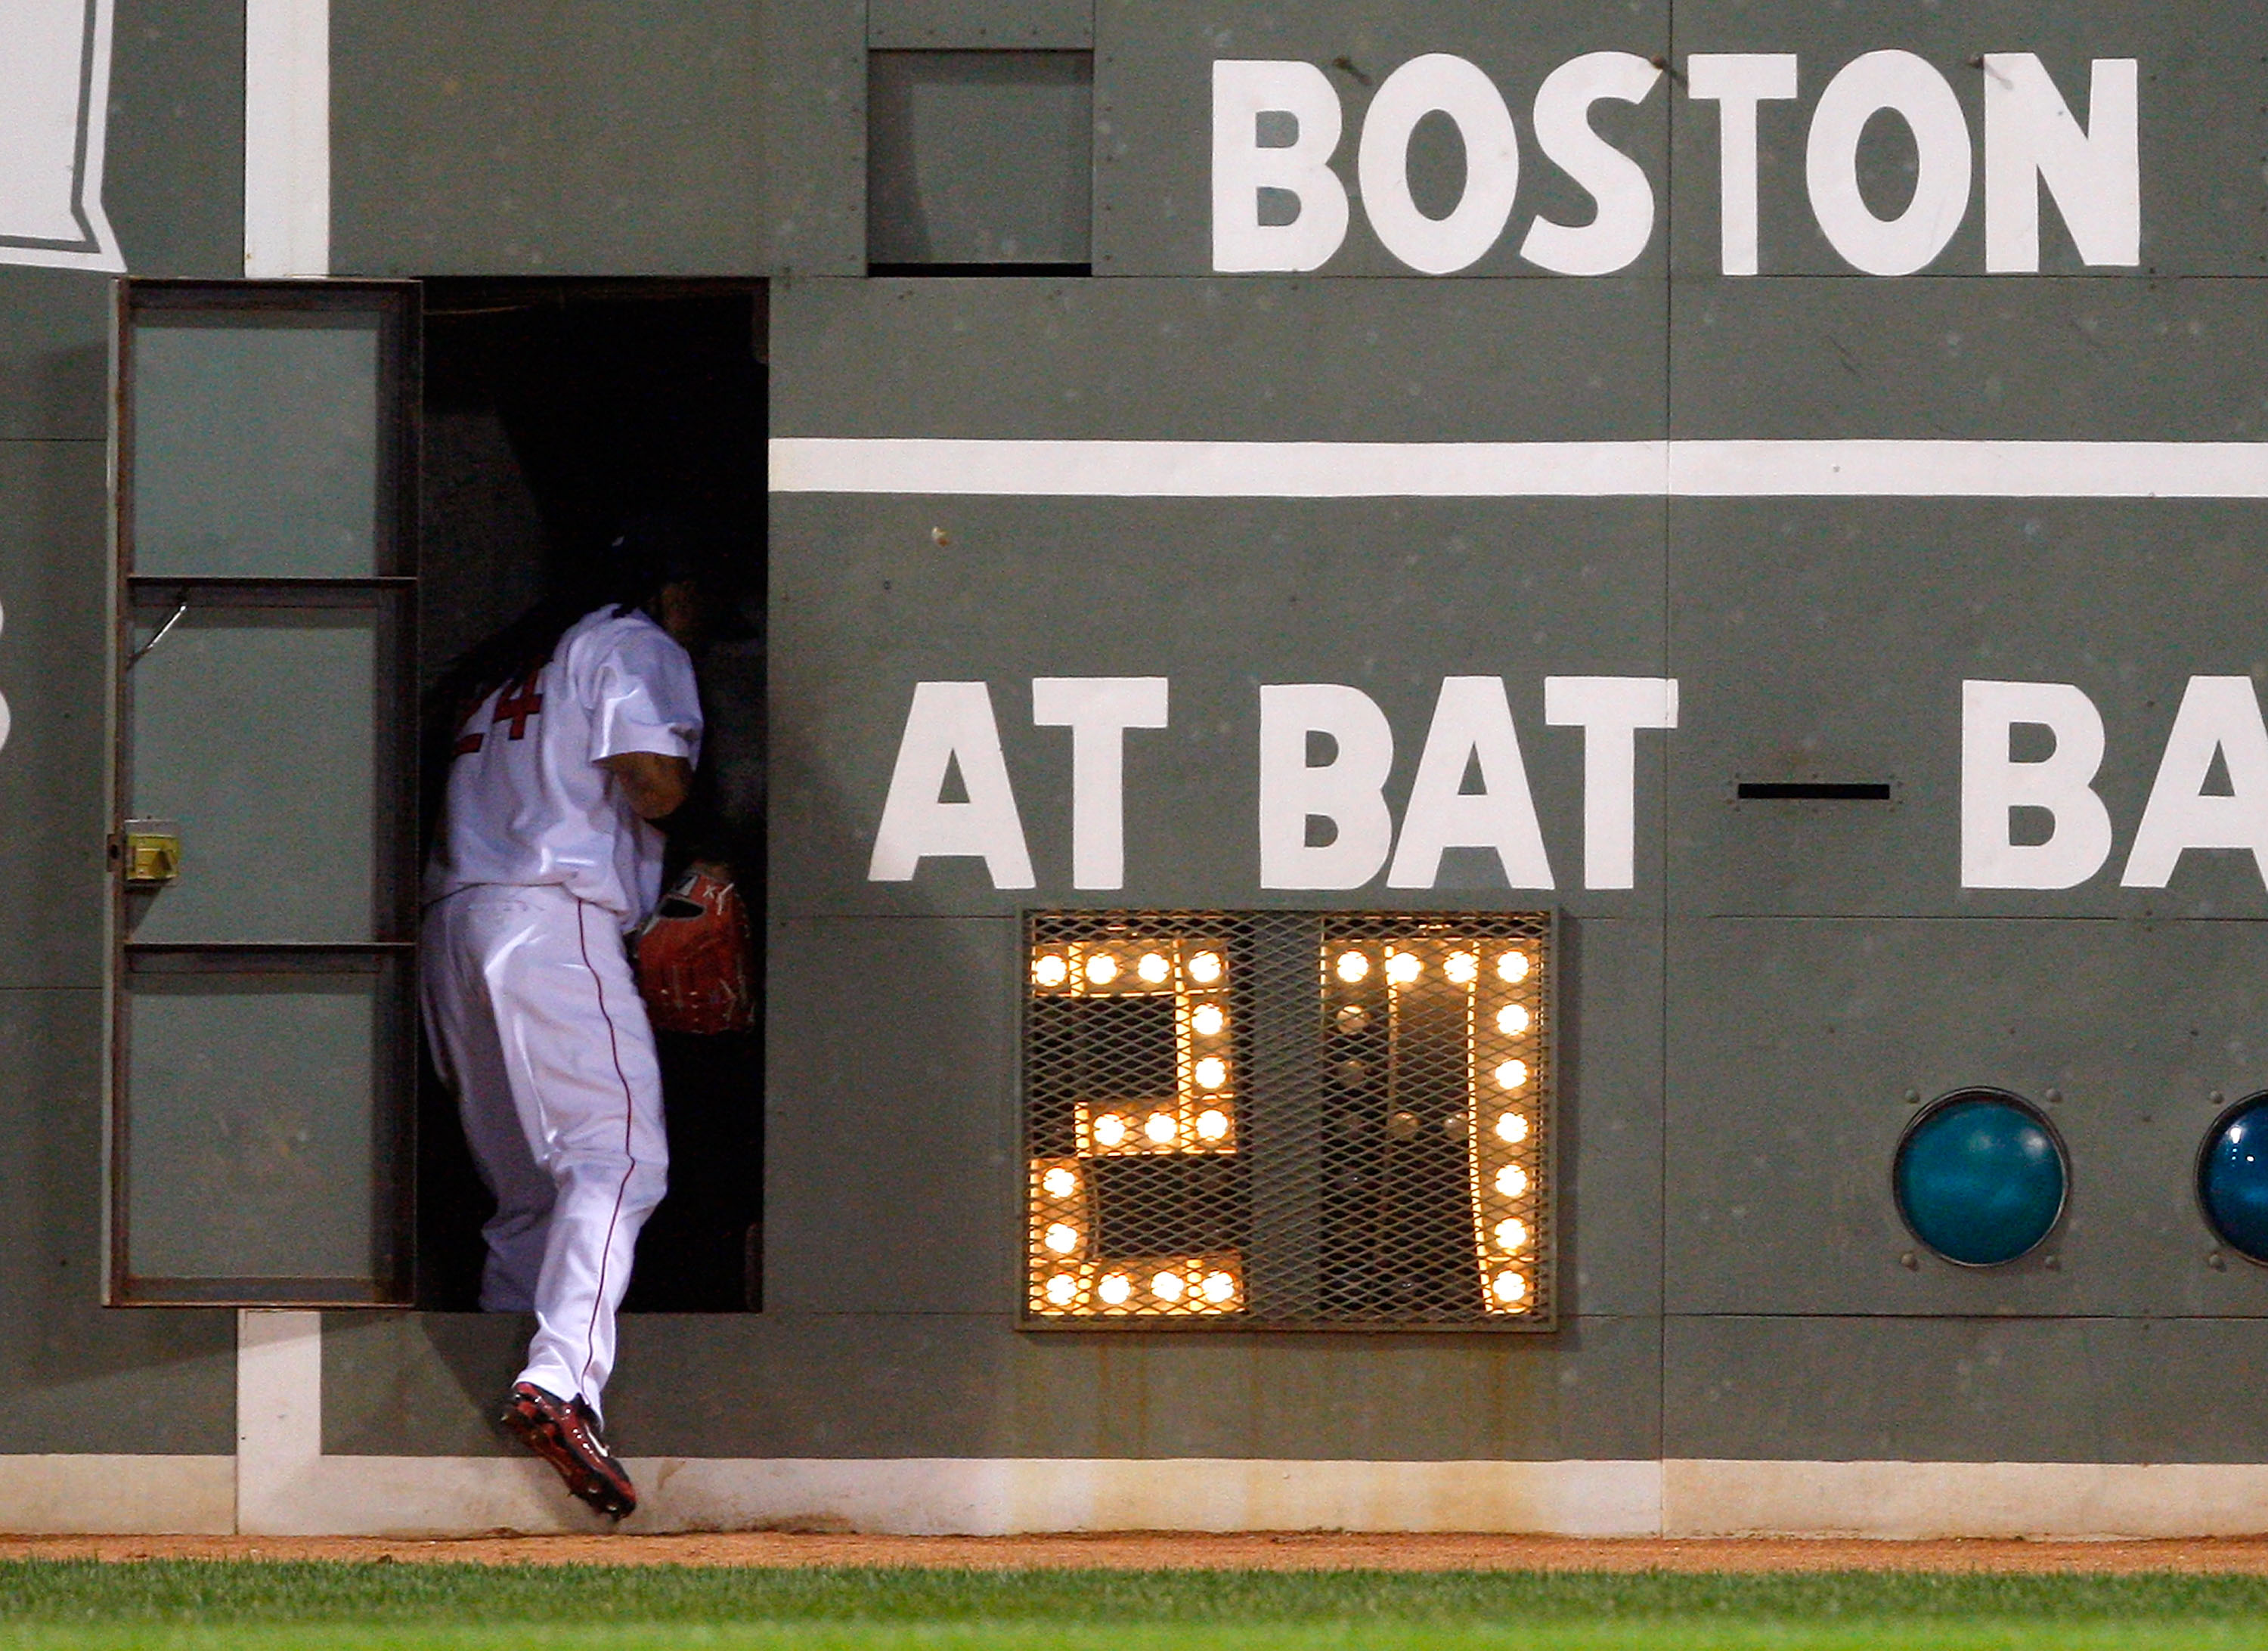 BOSTON - JULY 30: Manny Ramirez #24 of the Boston Red Sox heads into the left field wall during a pitching change against the Los Angeles Angels of Anaheim at Fenway Park on July 30, 2008 in Boston, Massachusetts.  (Photo by Jim Rogash/Getty Images)